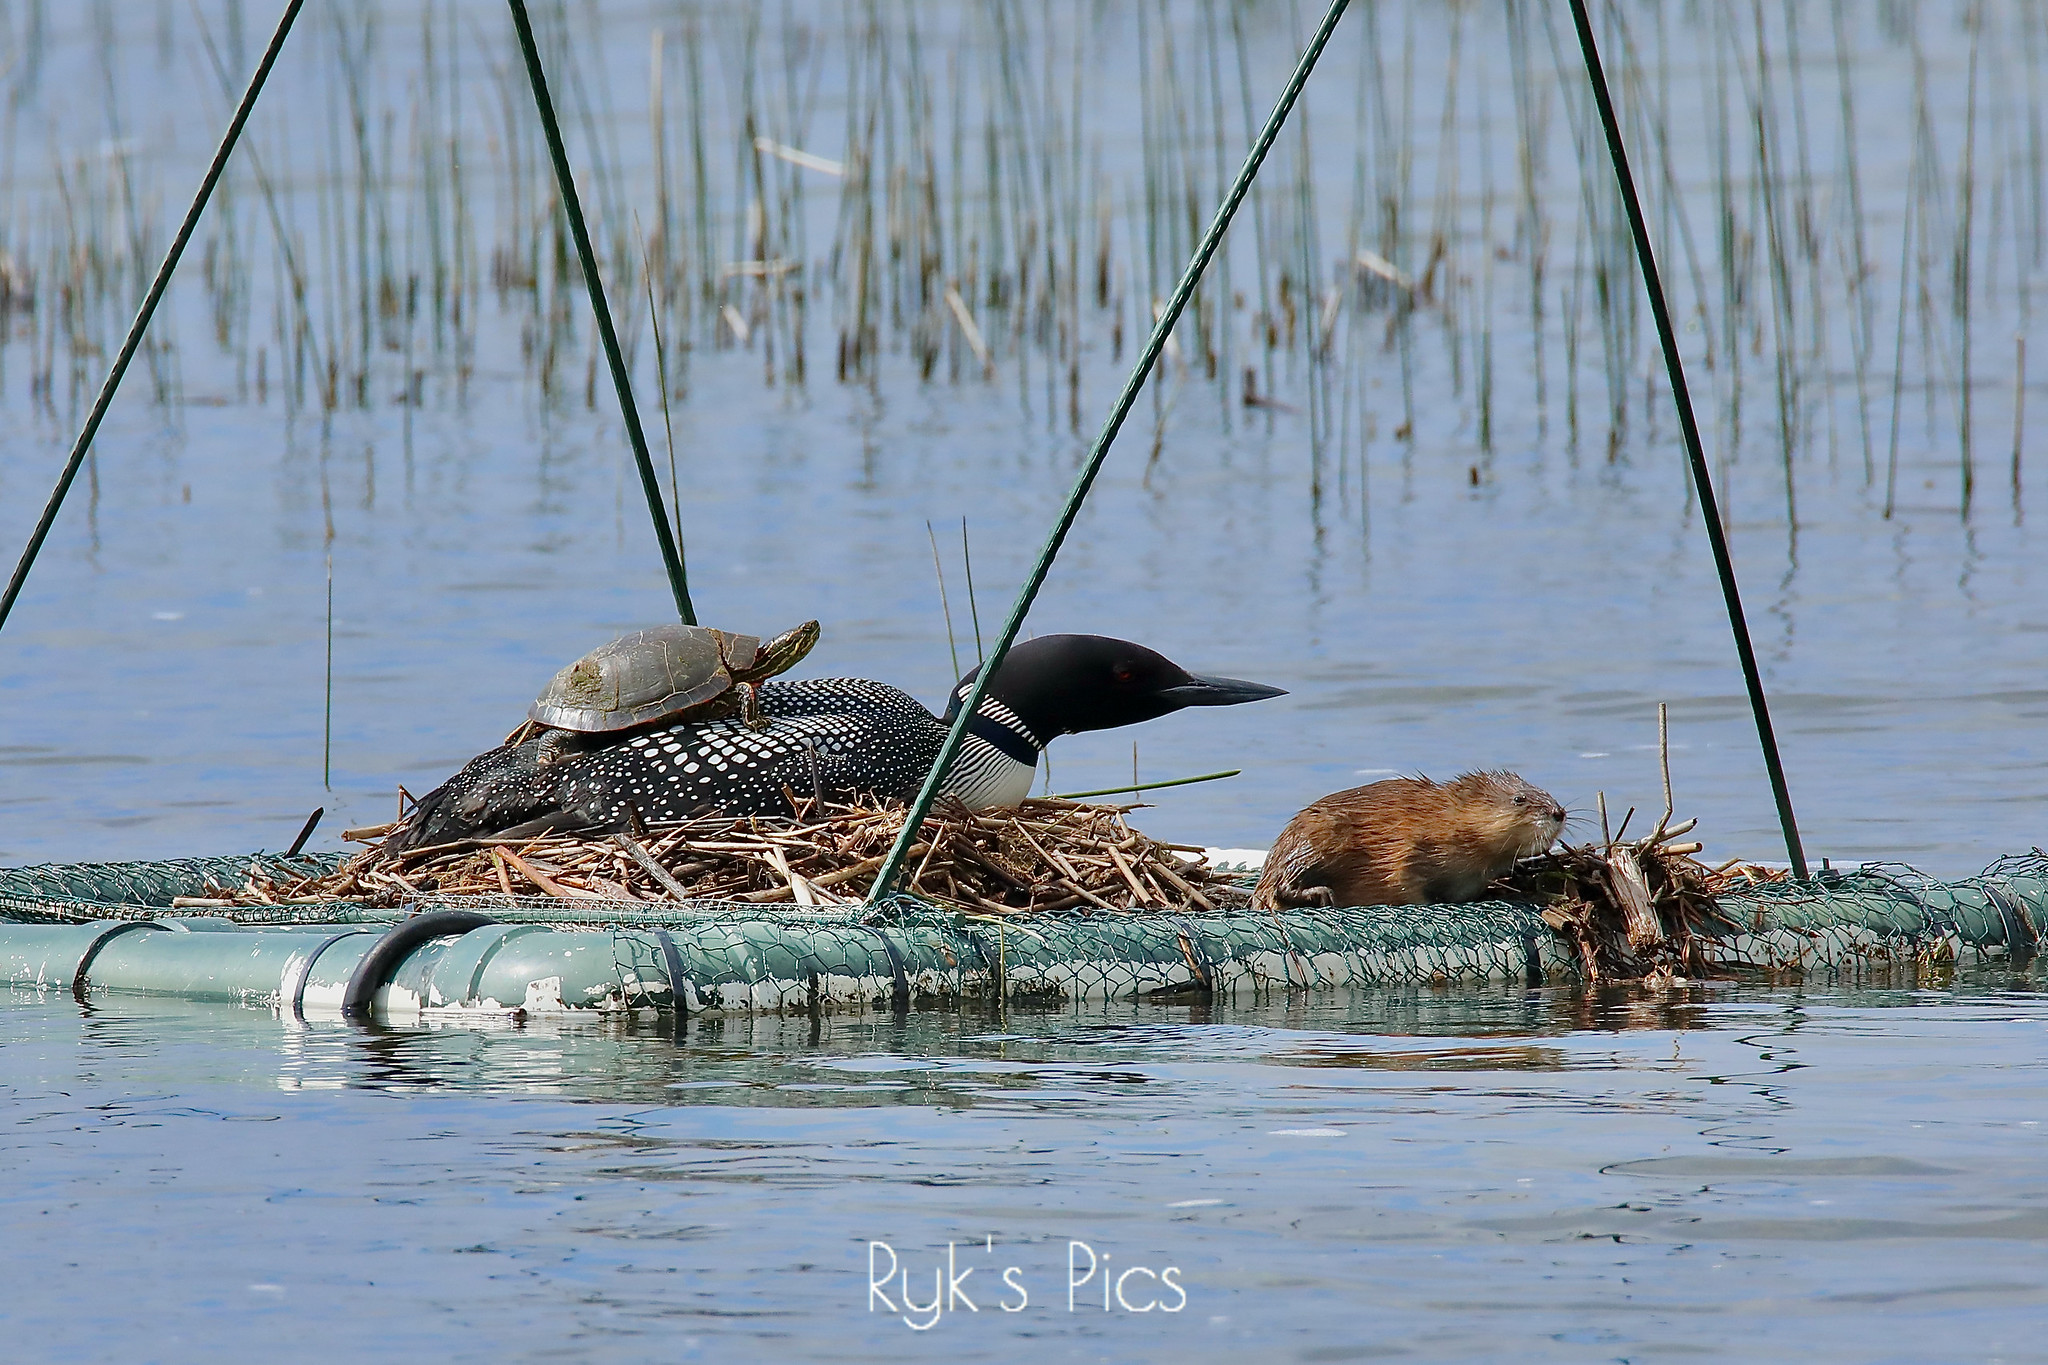 Turtle Caught Sunning Itself on the Back of a Loon